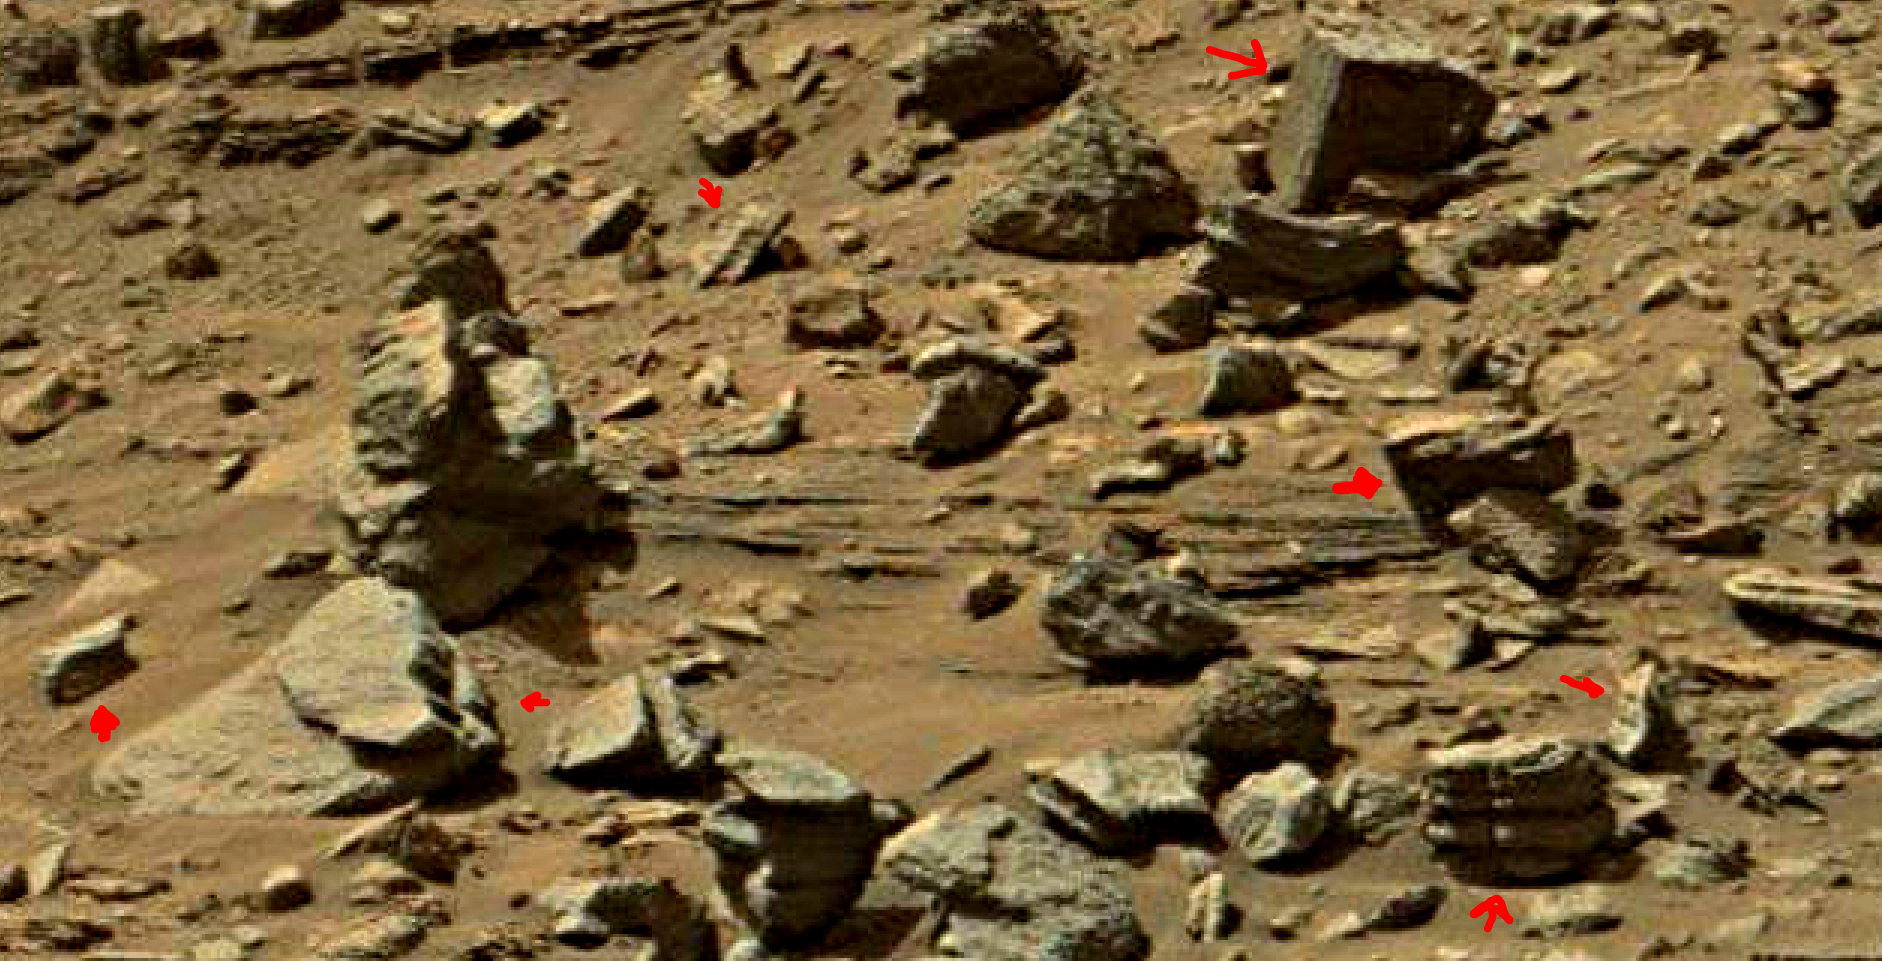 mars sol 1429 anomaly artifacts 1-2a was life on mars